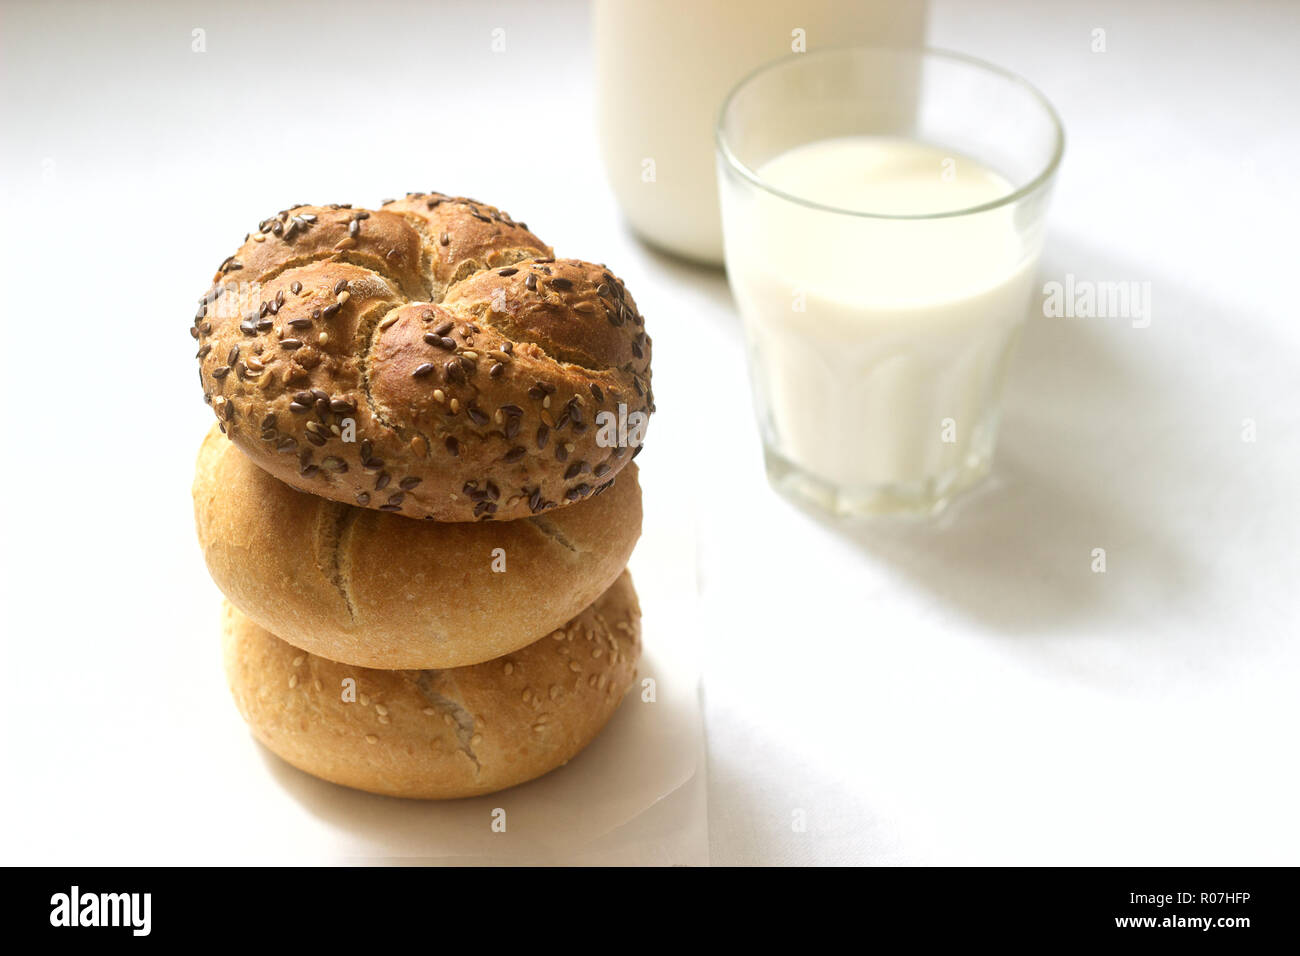 Wheat and rye Kaiser buns with flax and sesame seeds served with milk, healthy breakfast. Stock Photo